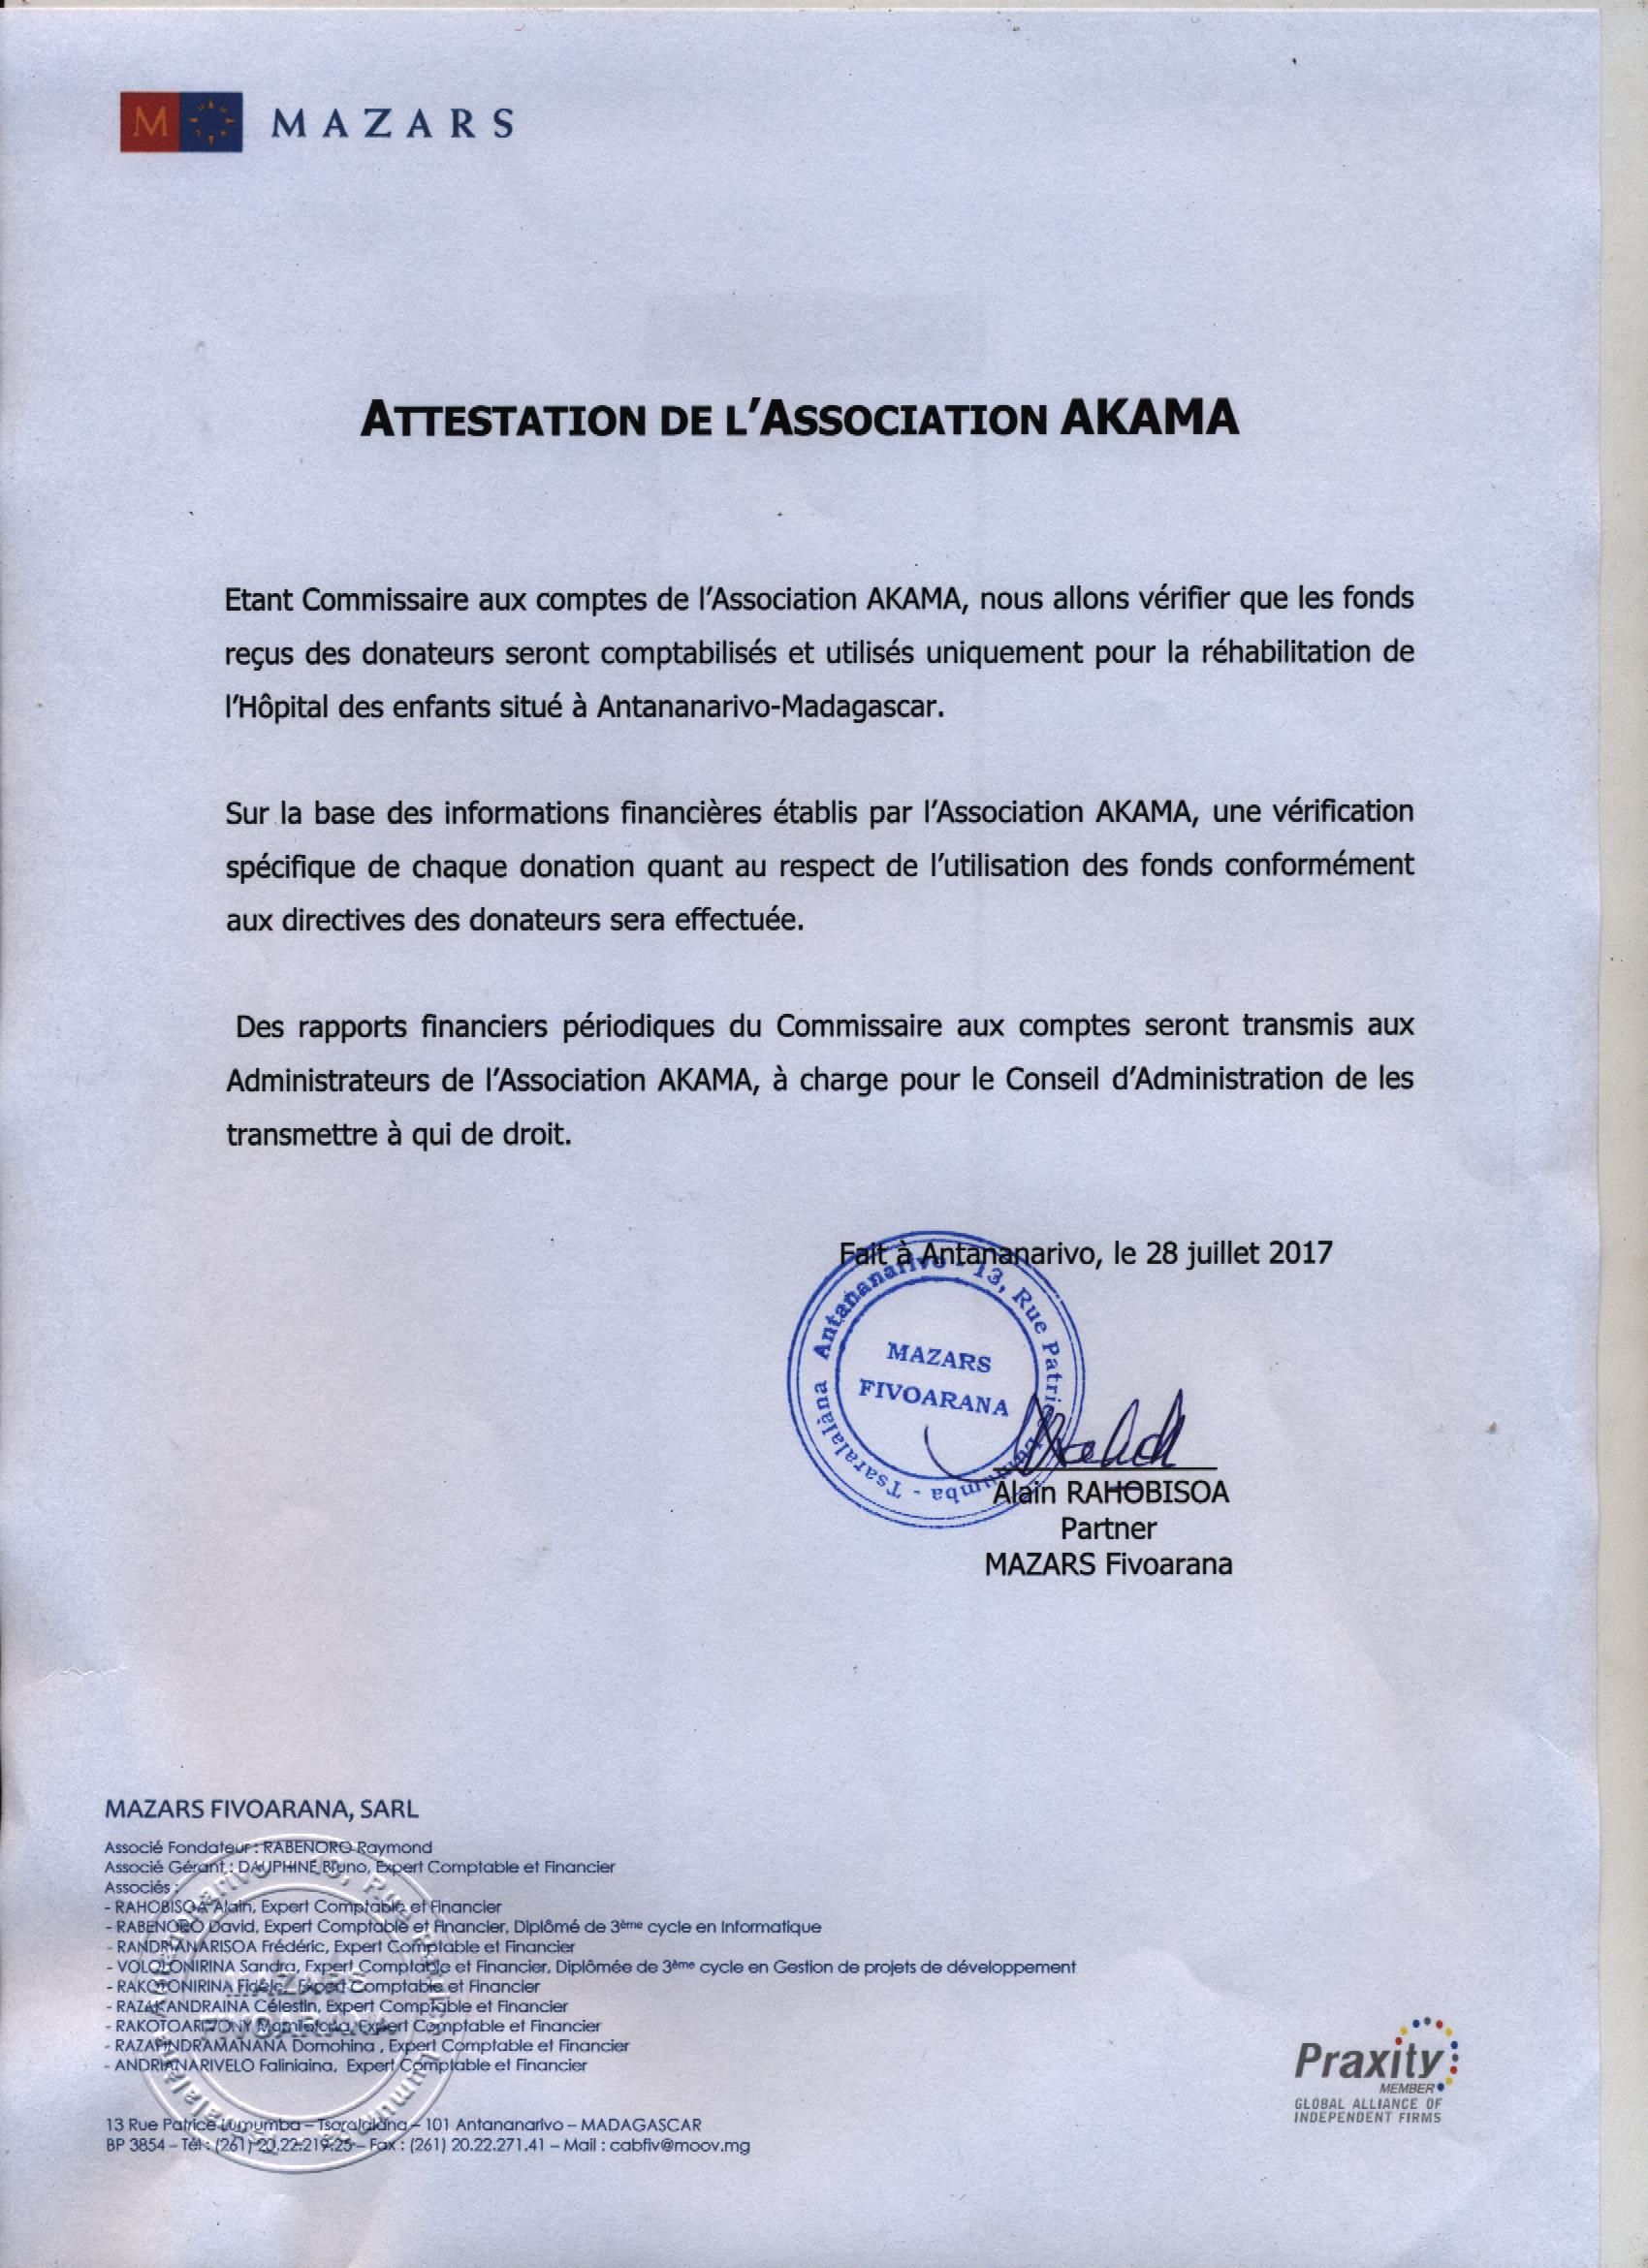 Attestation de l'association AKAMA